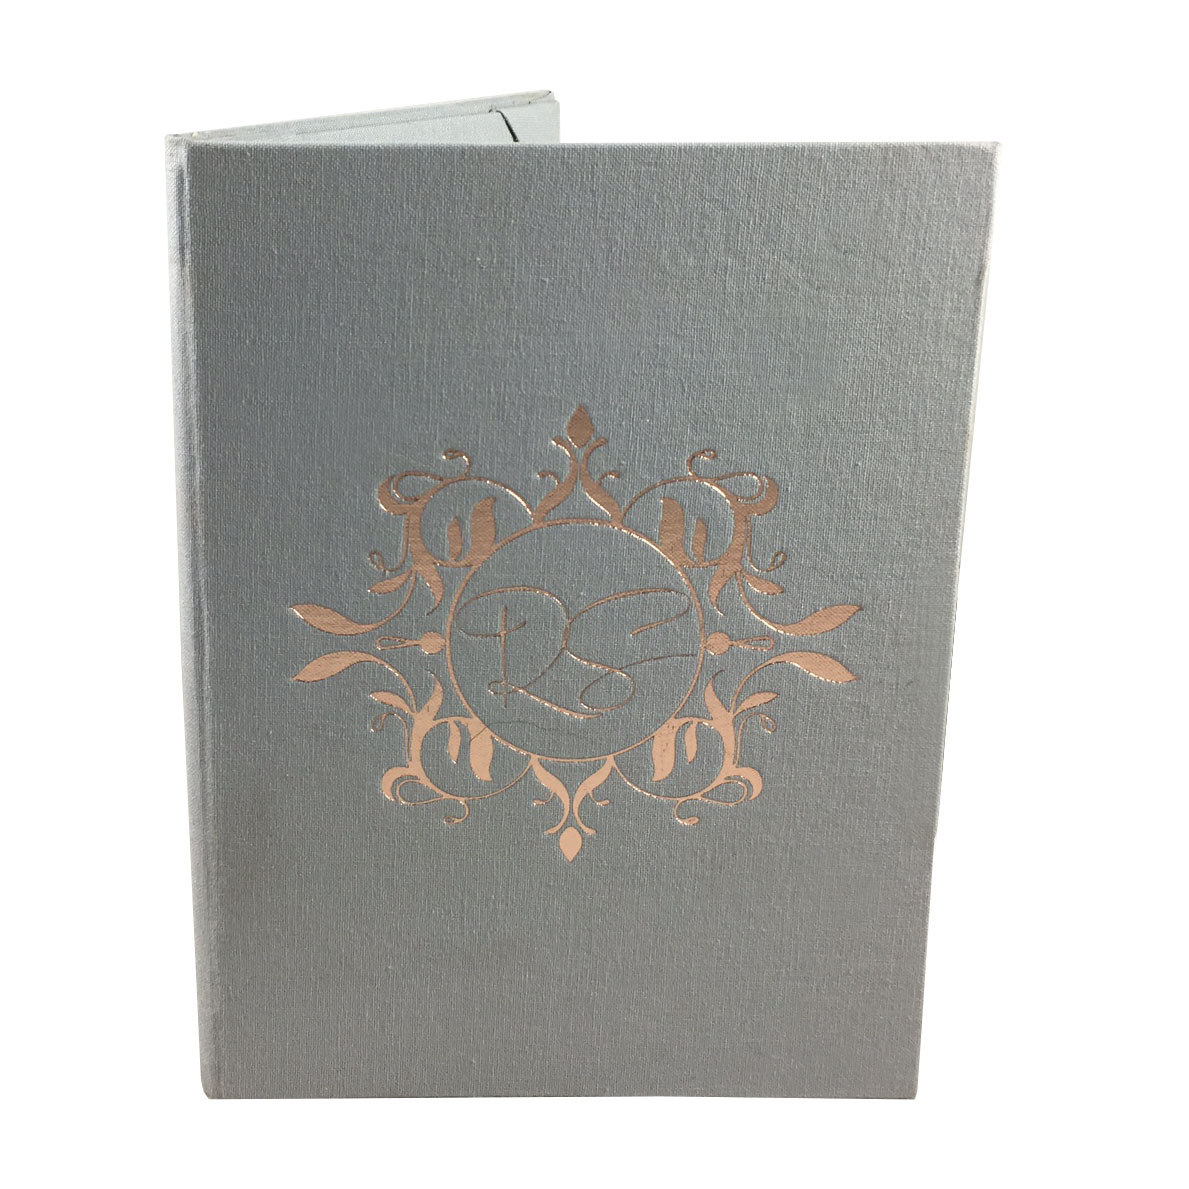 Rosegold foil stamped monogram linen wedding folder